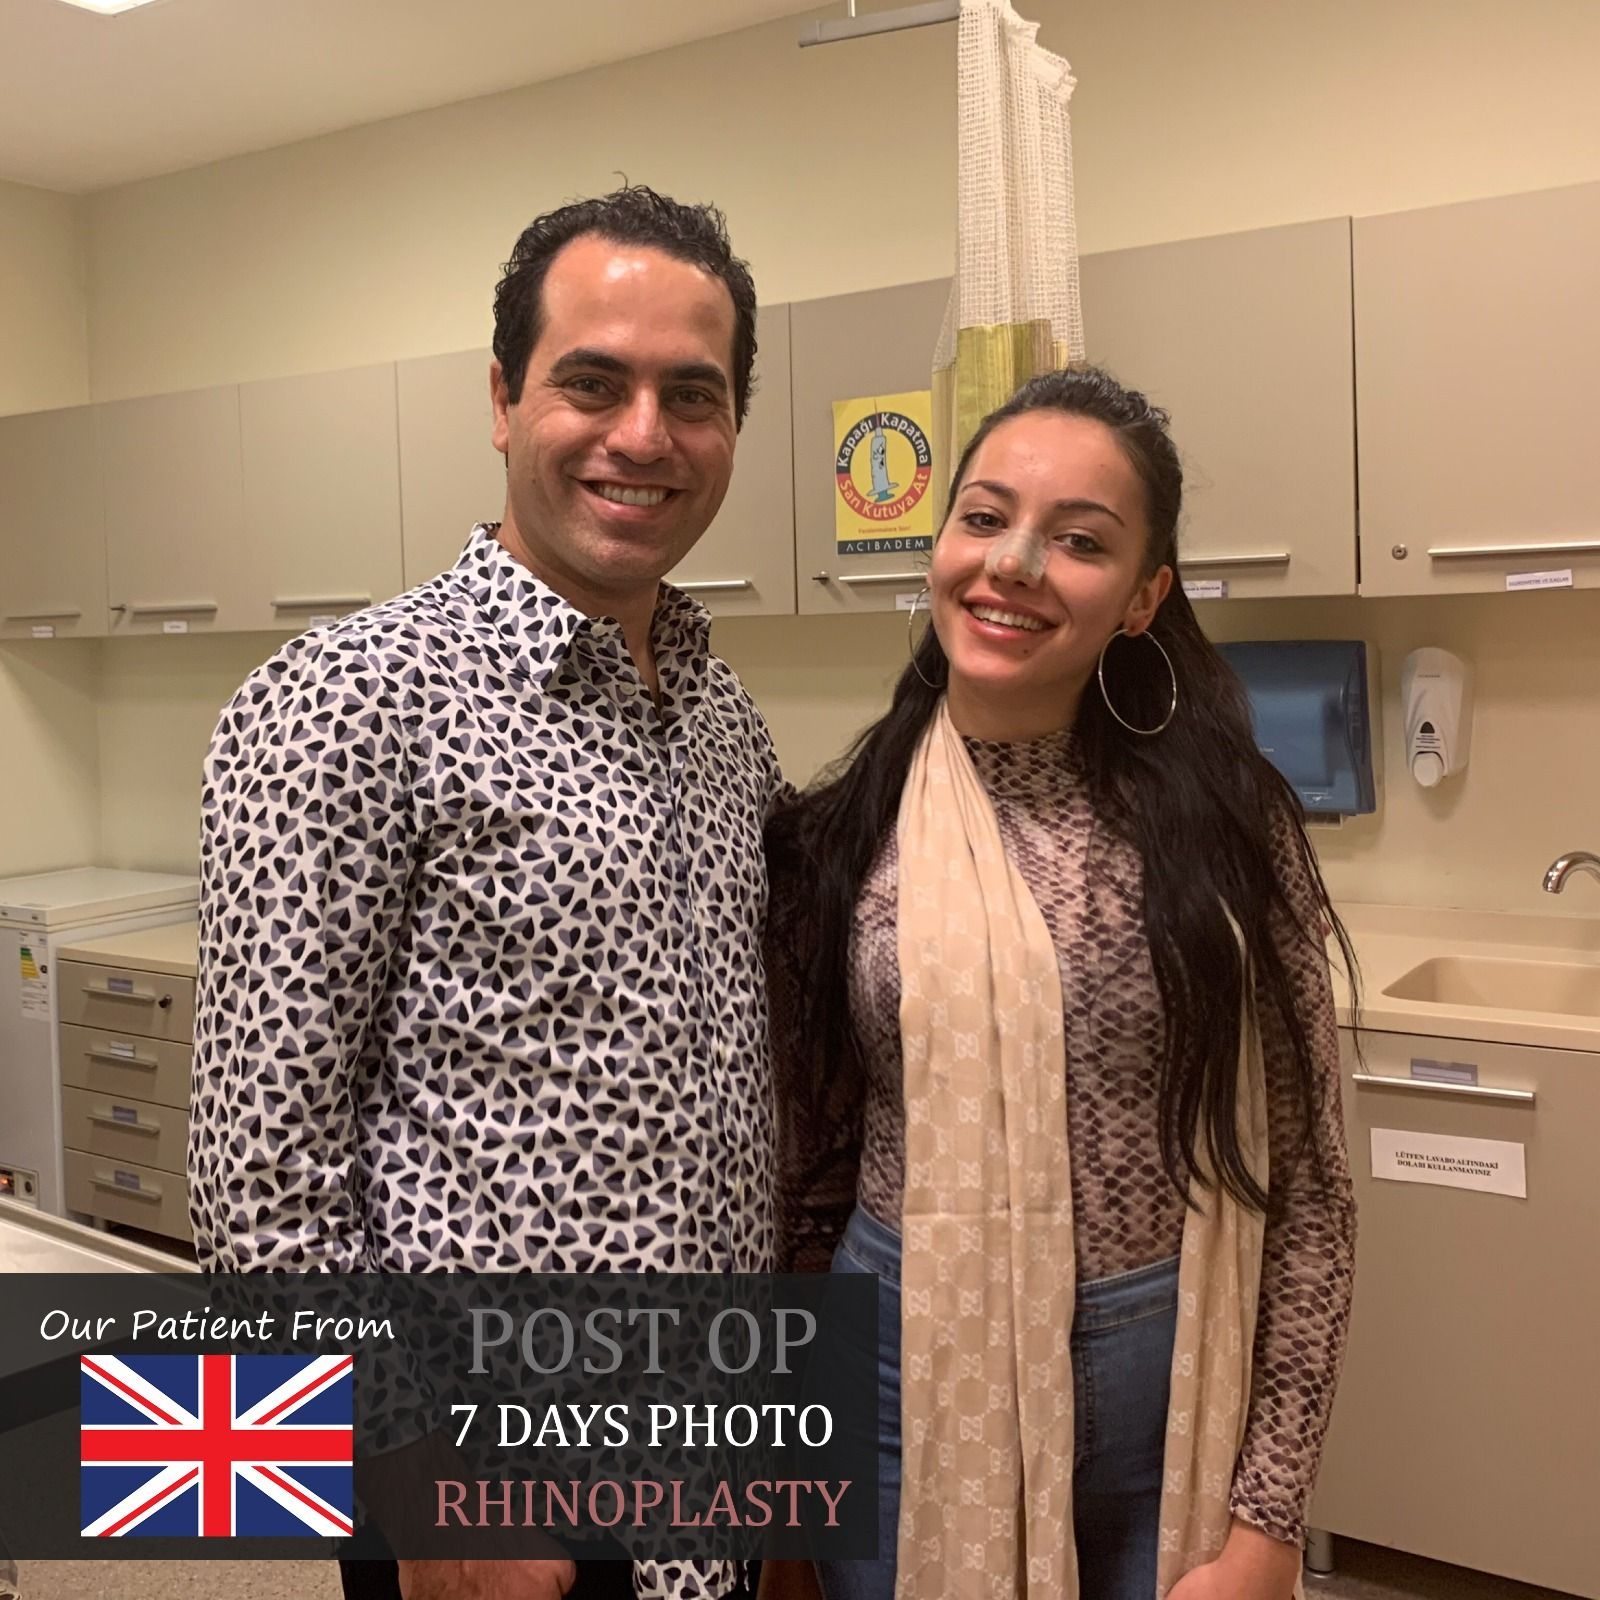 Rhinoplasty We removed splint and silicons from our dear patient Marianna who came from UK  We took a souvenir photo  Get well soon  More than Surgery Art of Nose